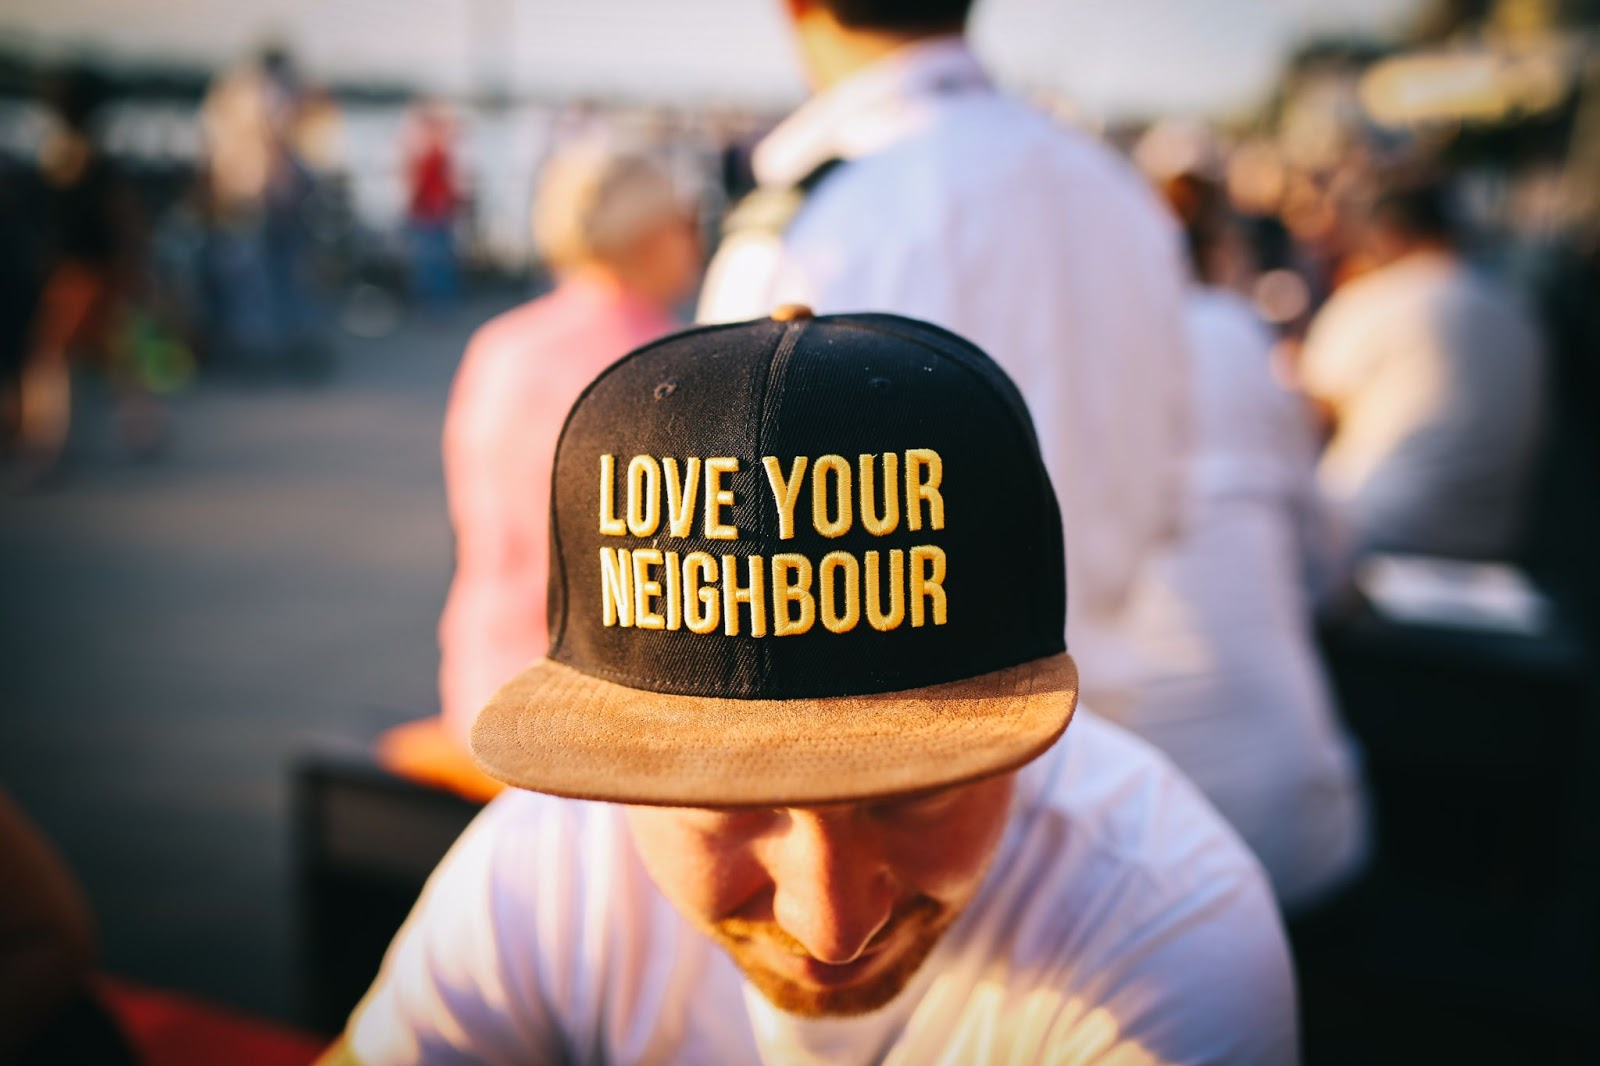 """A man wears a hat that says """"Love your neighbour"""""""